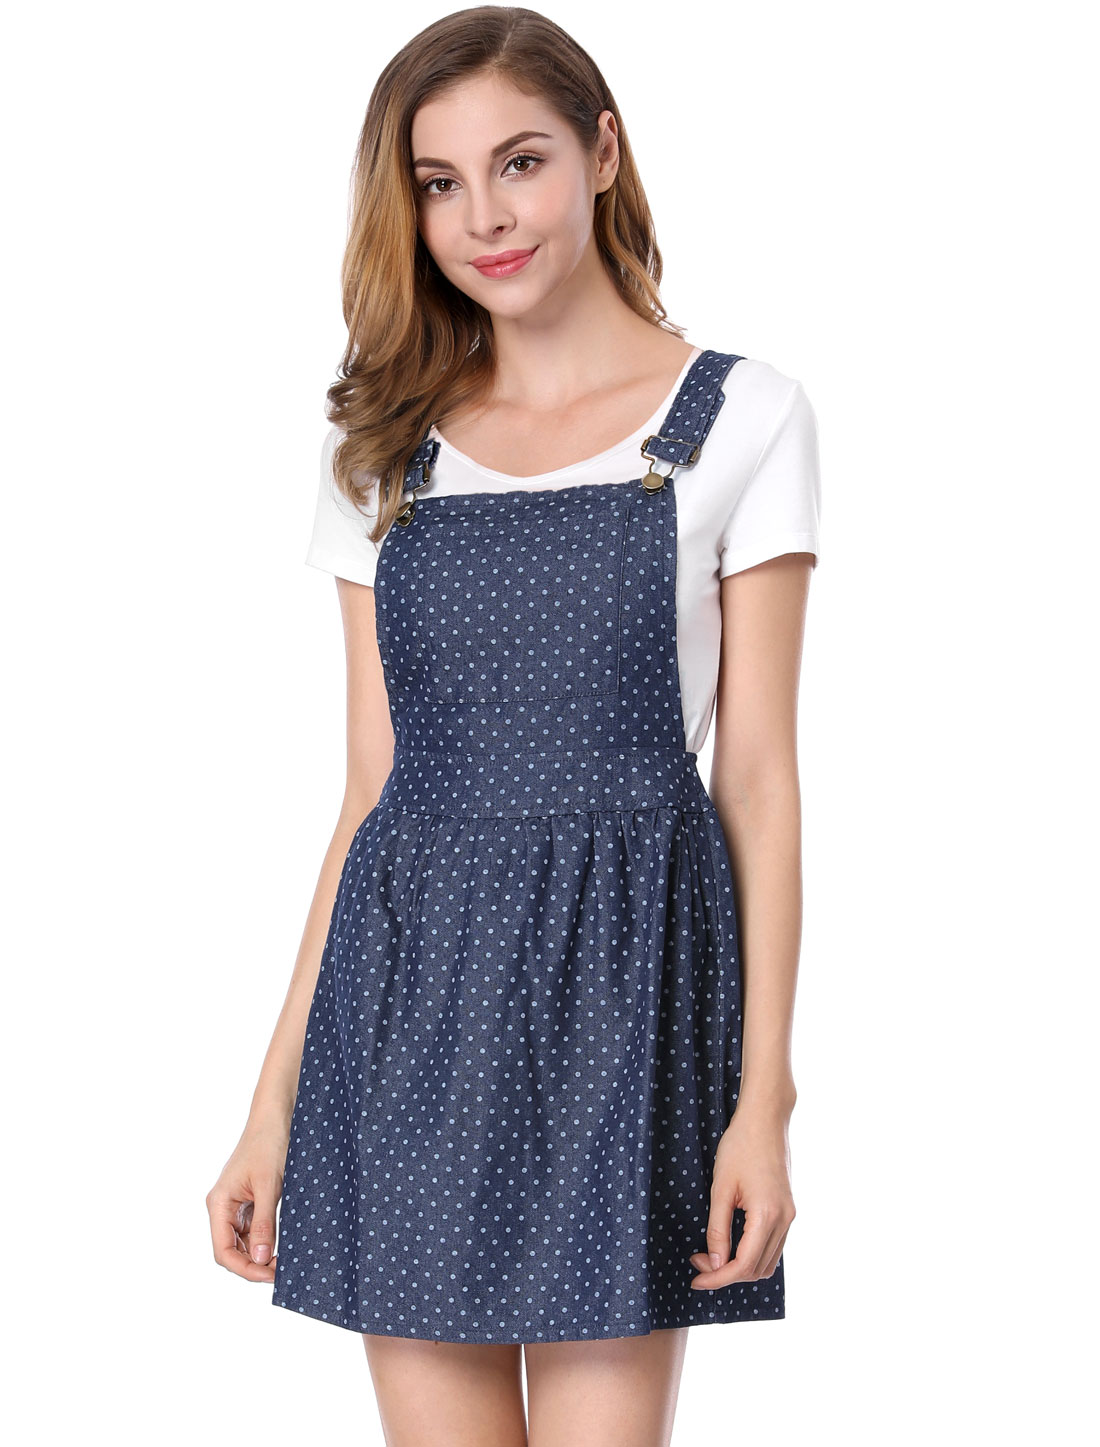 Lady Dots Print Adjustable Shoulder Straps Denim Suspender Dress Dark Blue S